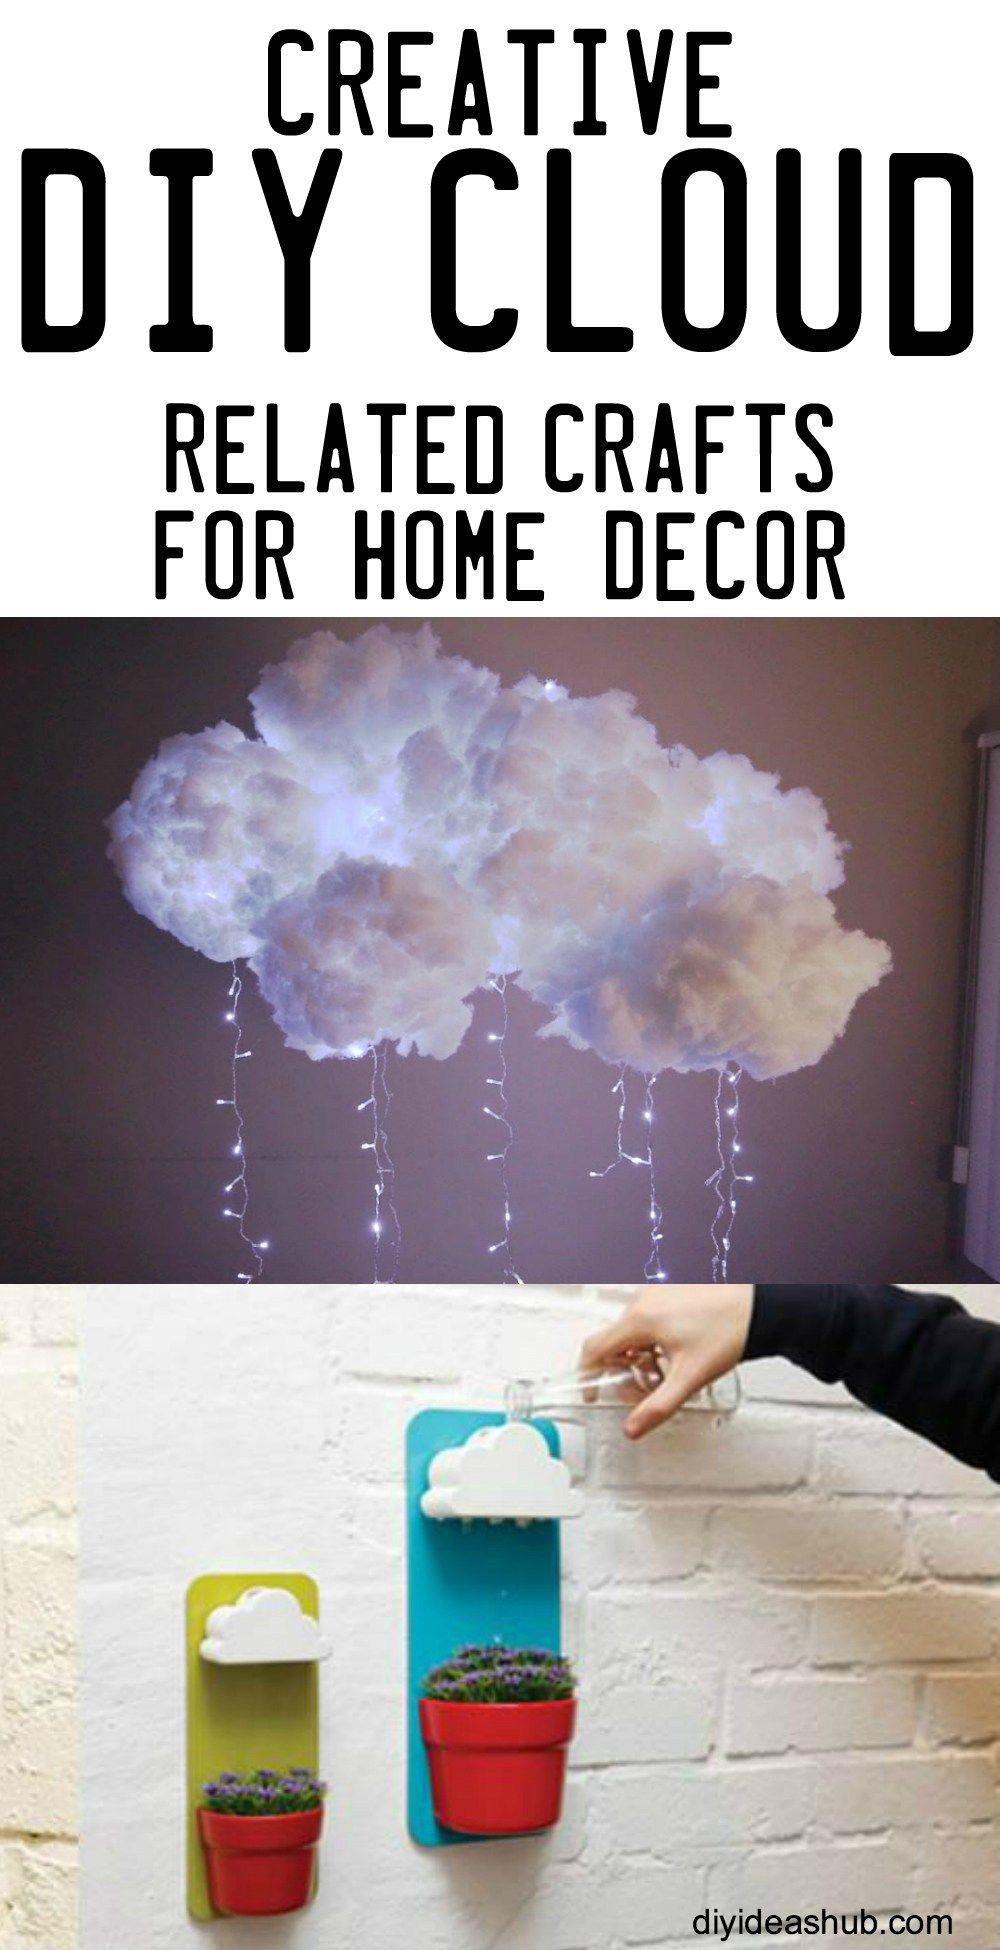 Creative Diy Cloud Related Crafts For Home Decor